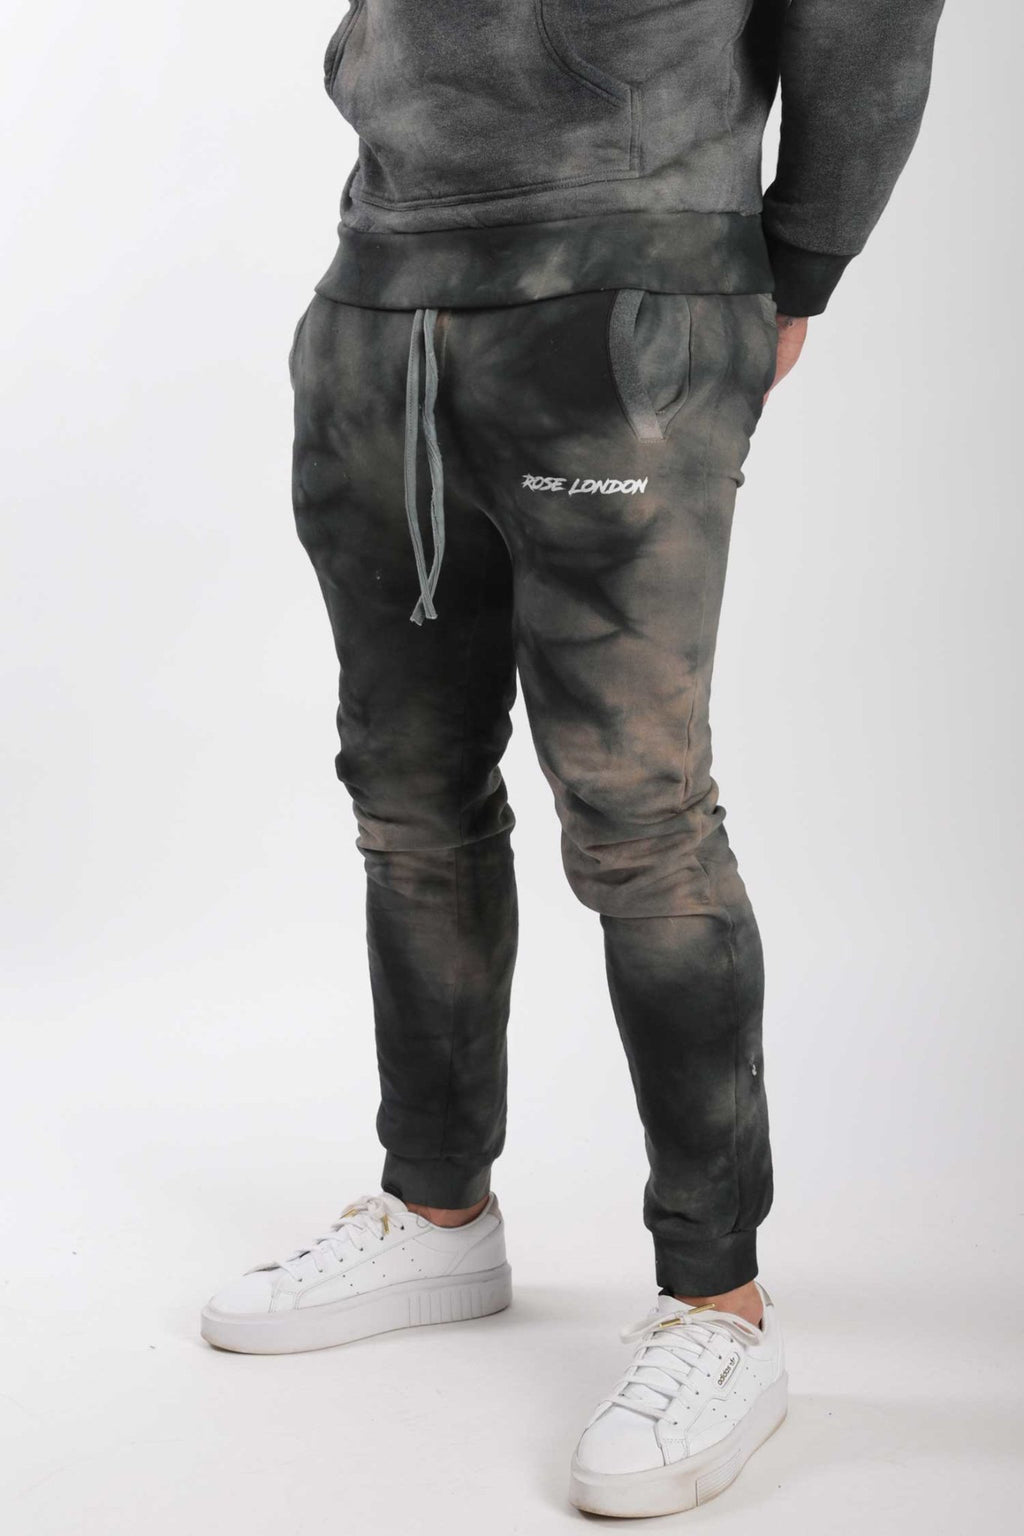 Rose London Tie Dye Jogger Black Rust - Rose London